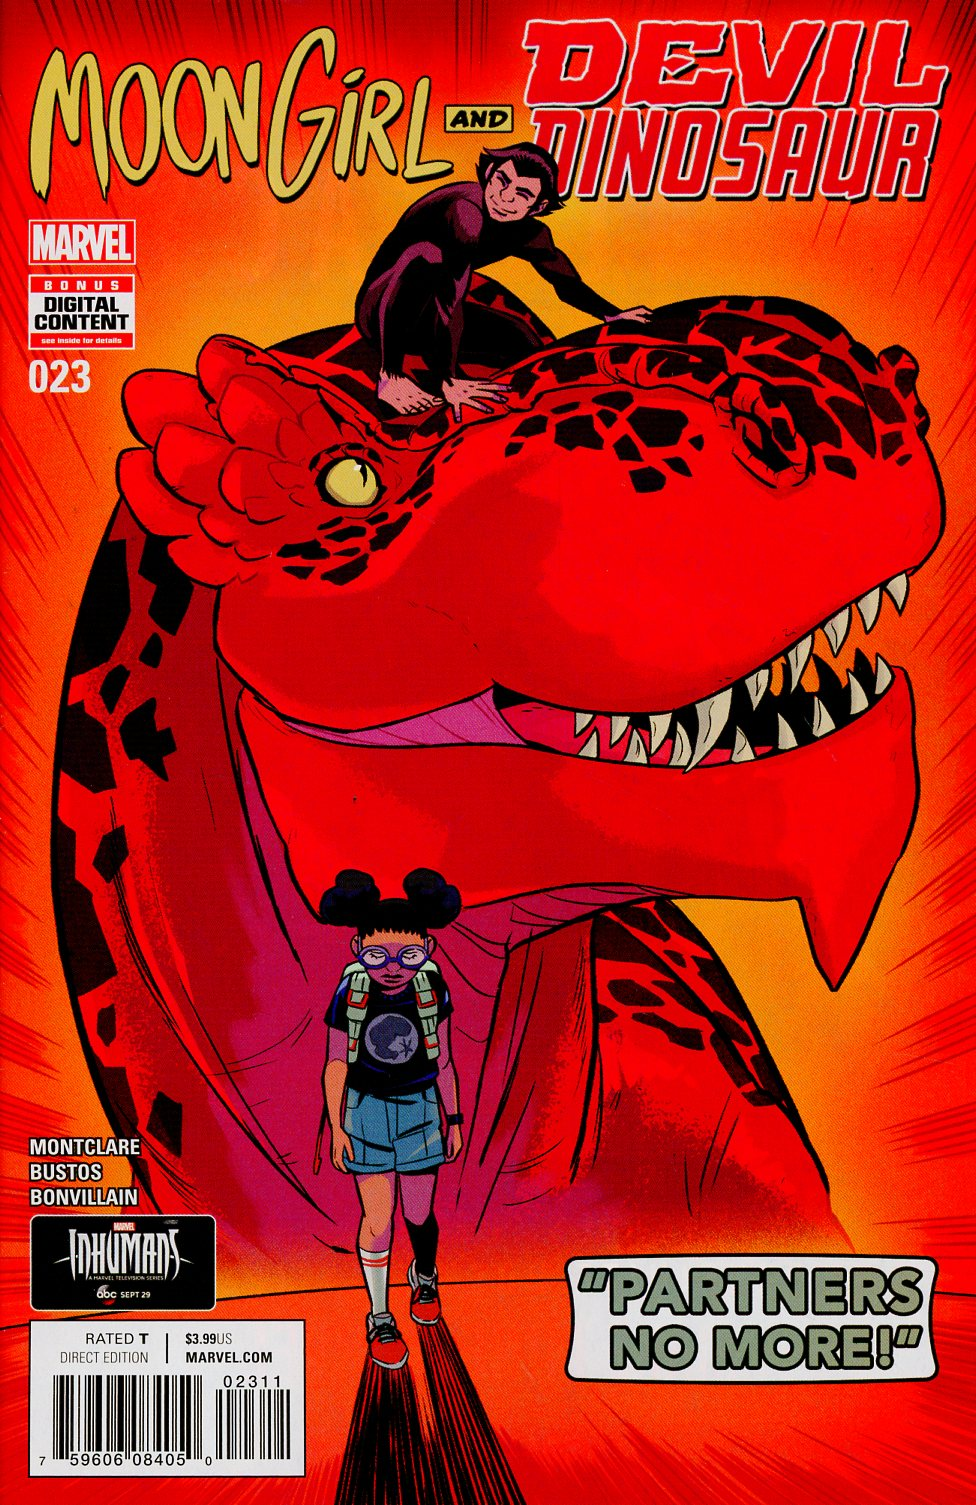 Moon Girl And Devil Dinosaur #23